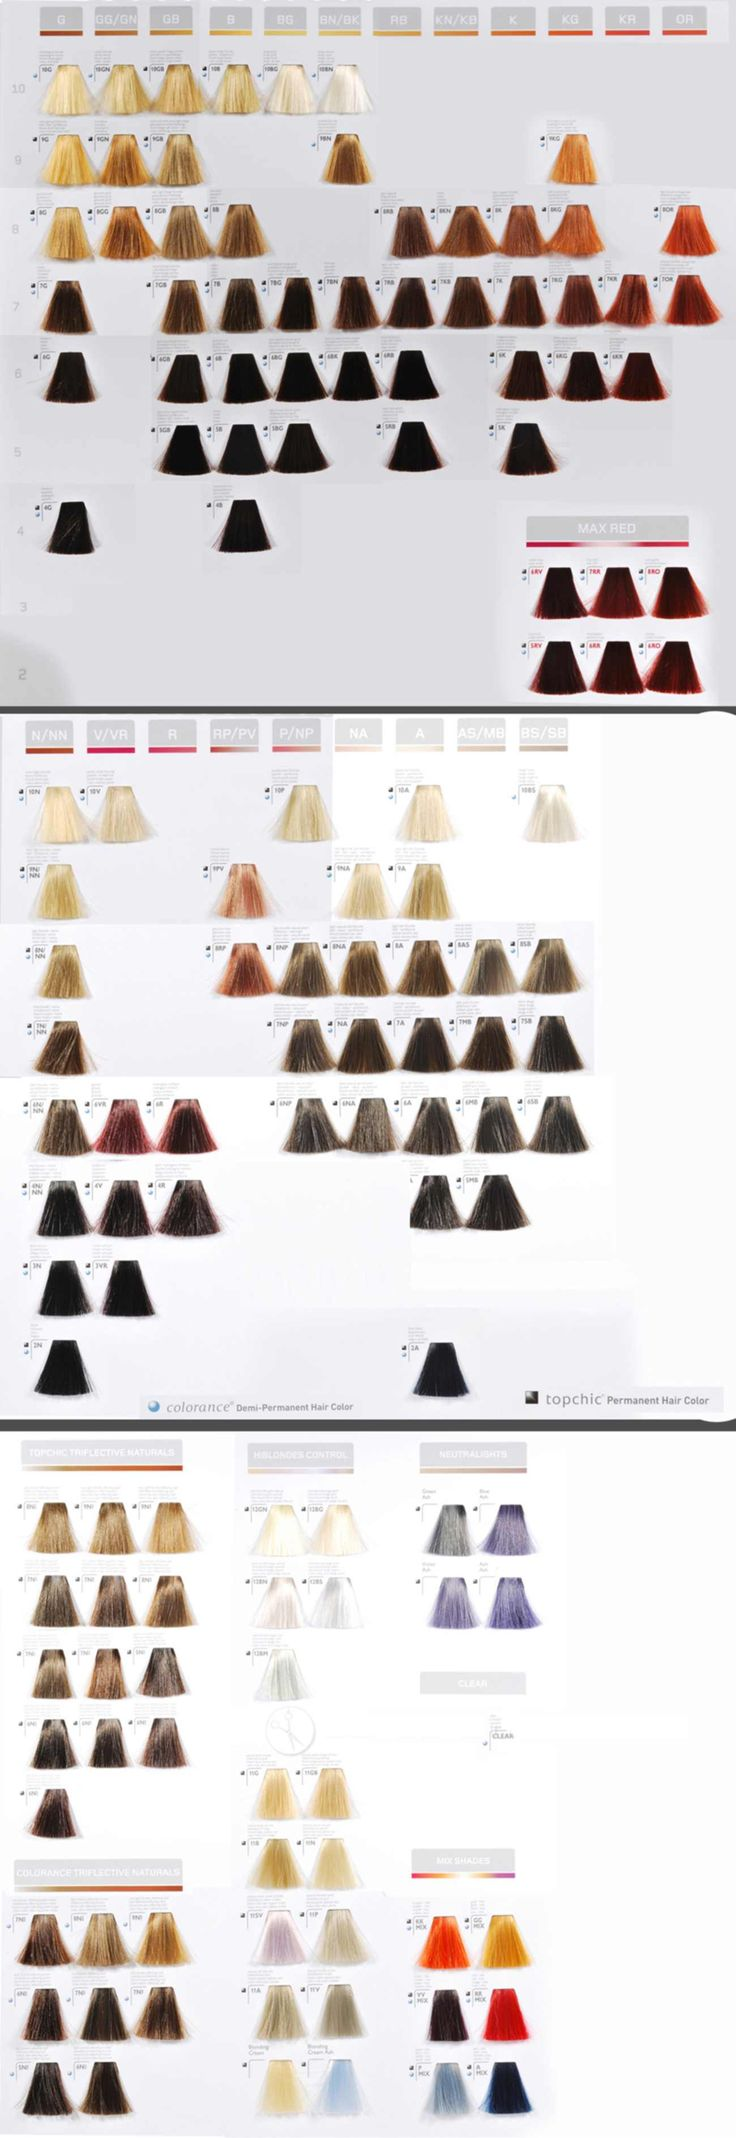 Loreal hair color chart 2016 - Goldwell Color Chart 1300 Jpg 1300 3778